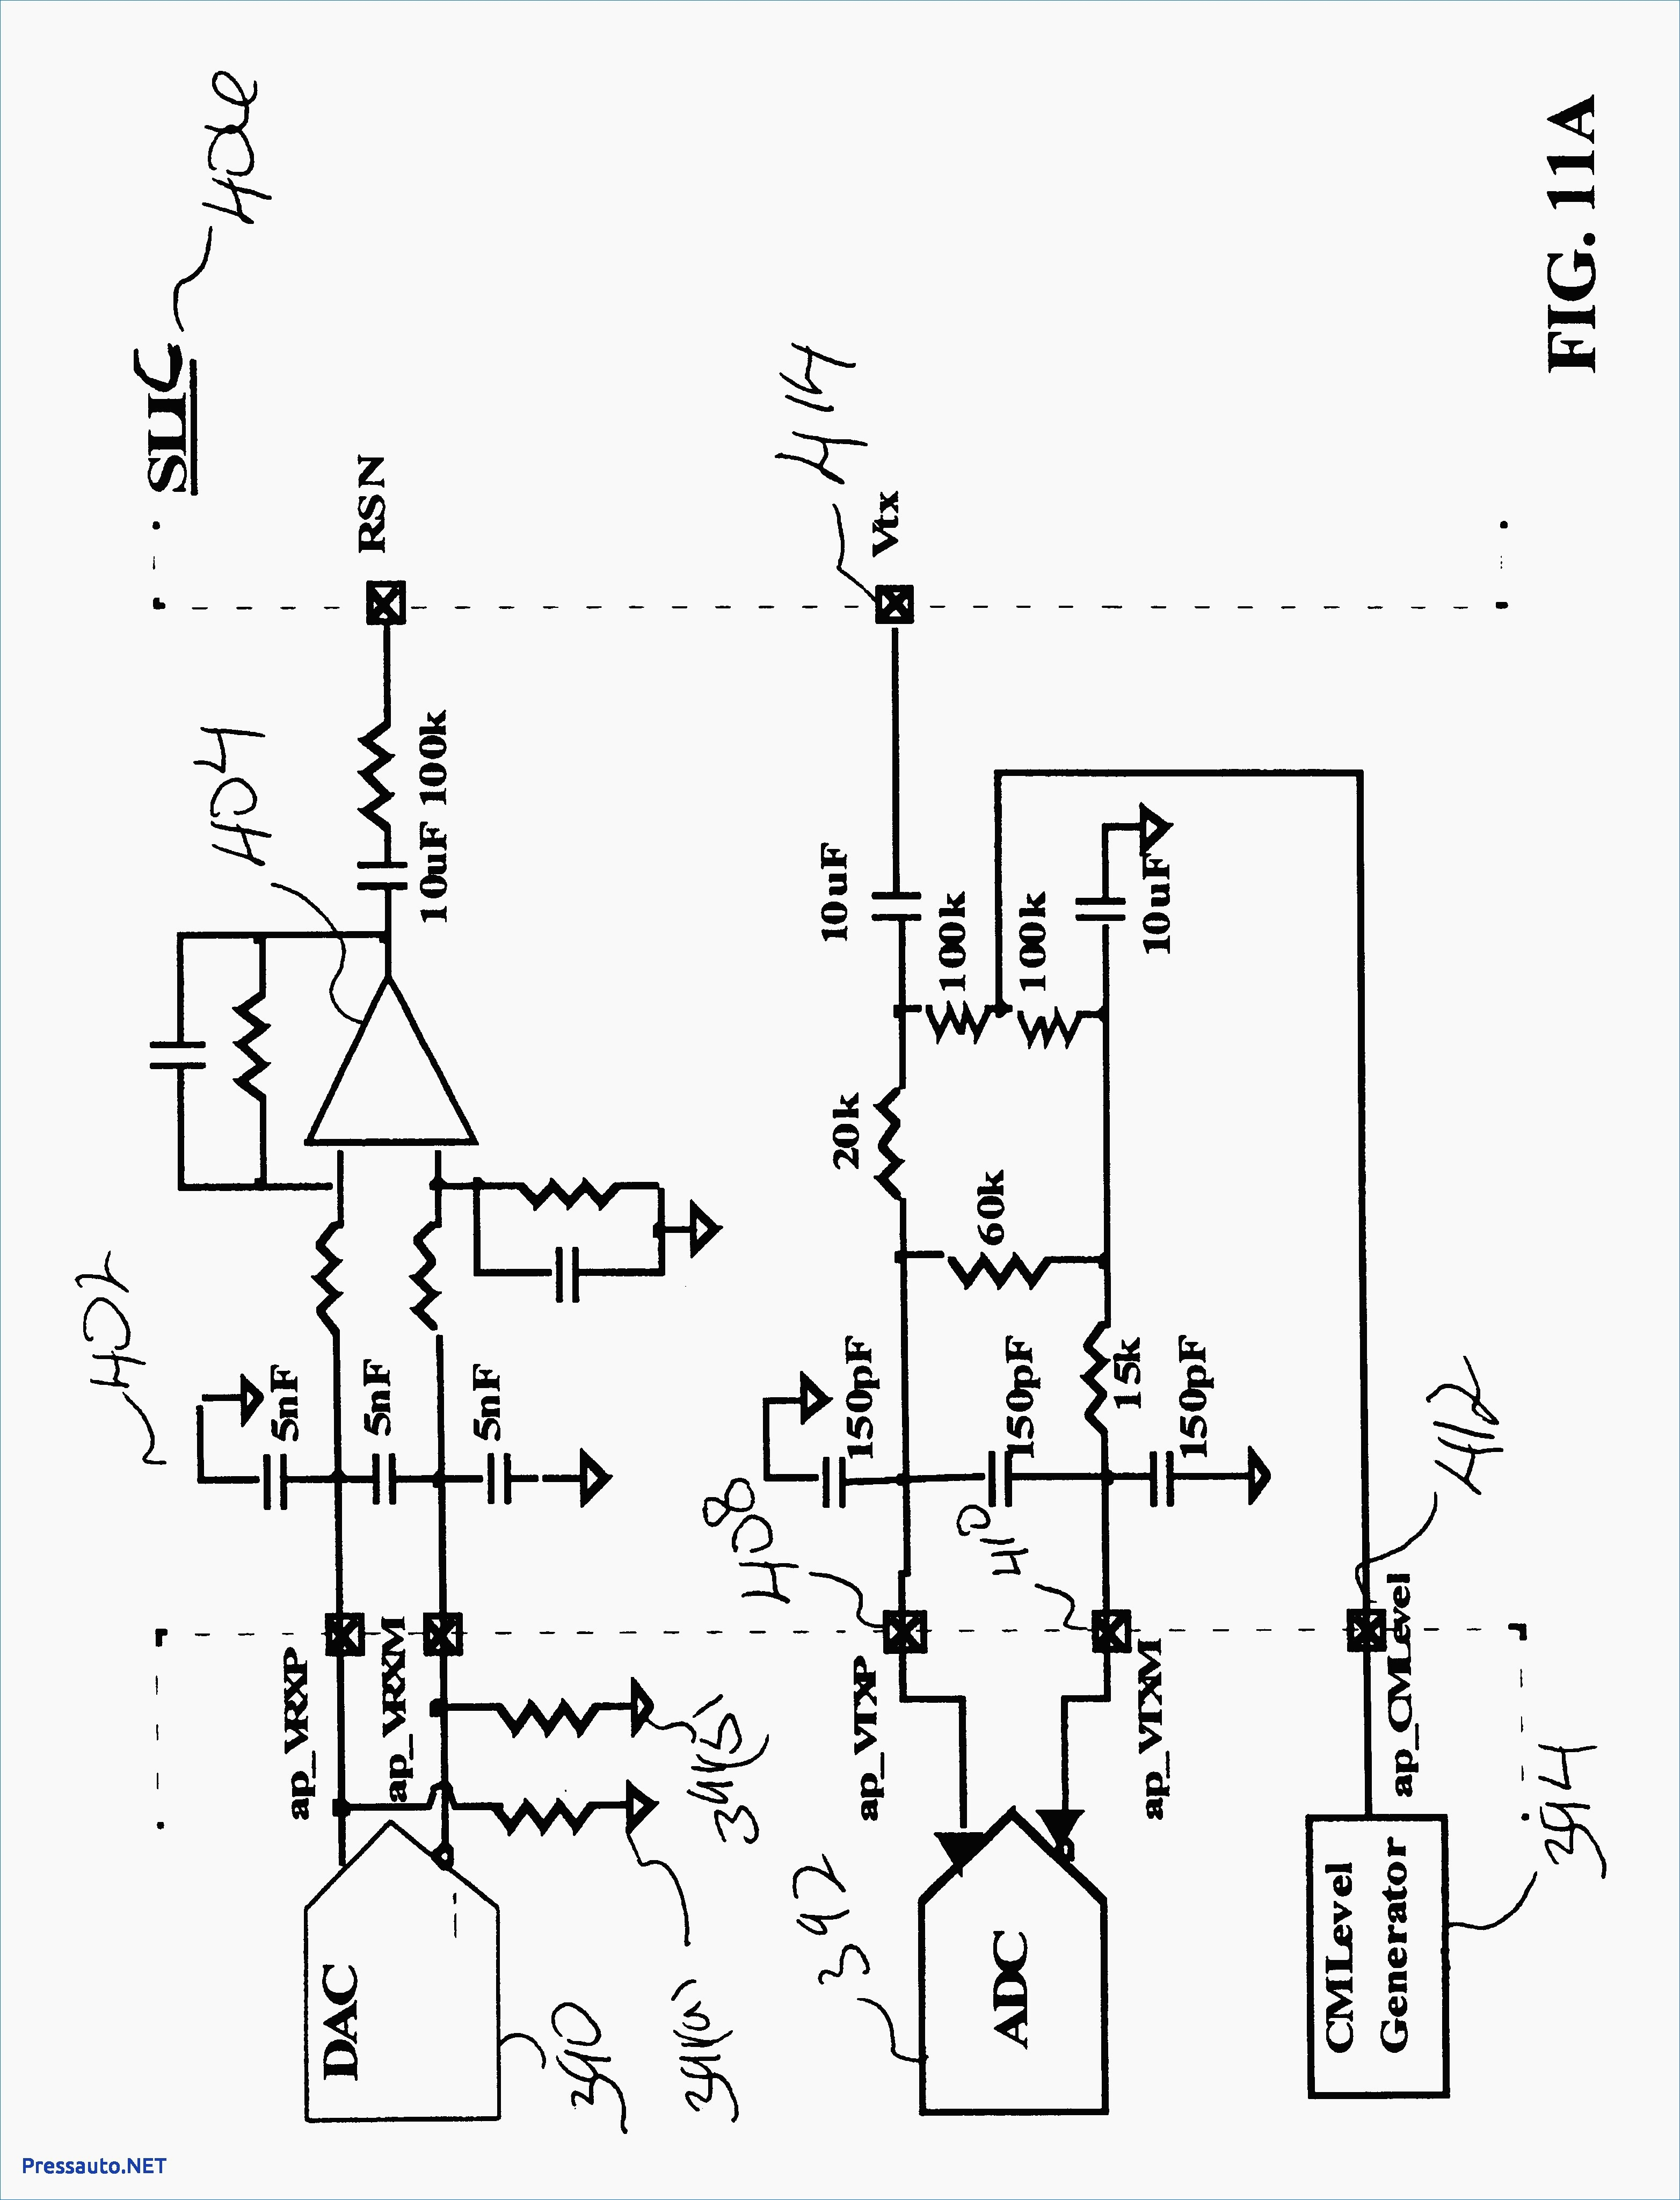 Acme Buck Boost Transformer Wiring Diagram